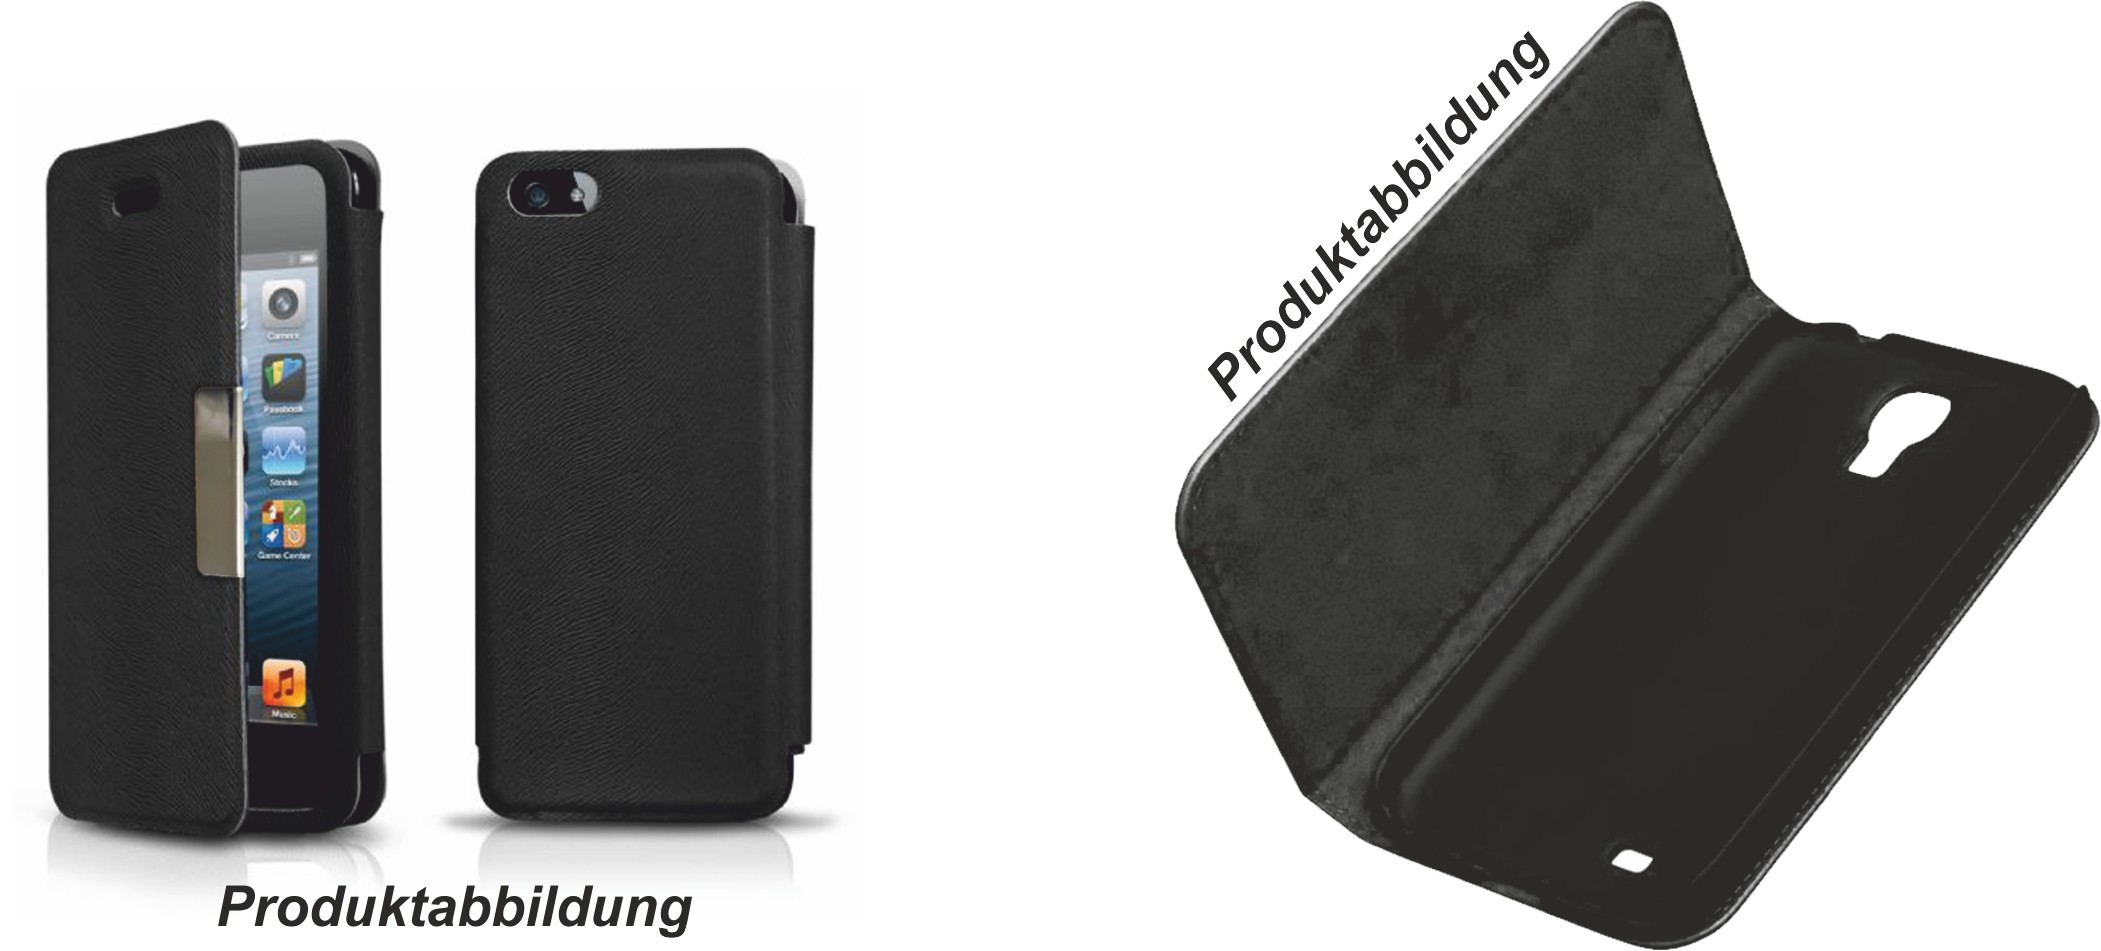 2GO Book-Case für iPhone 5 / 5S Leder – Bild 2